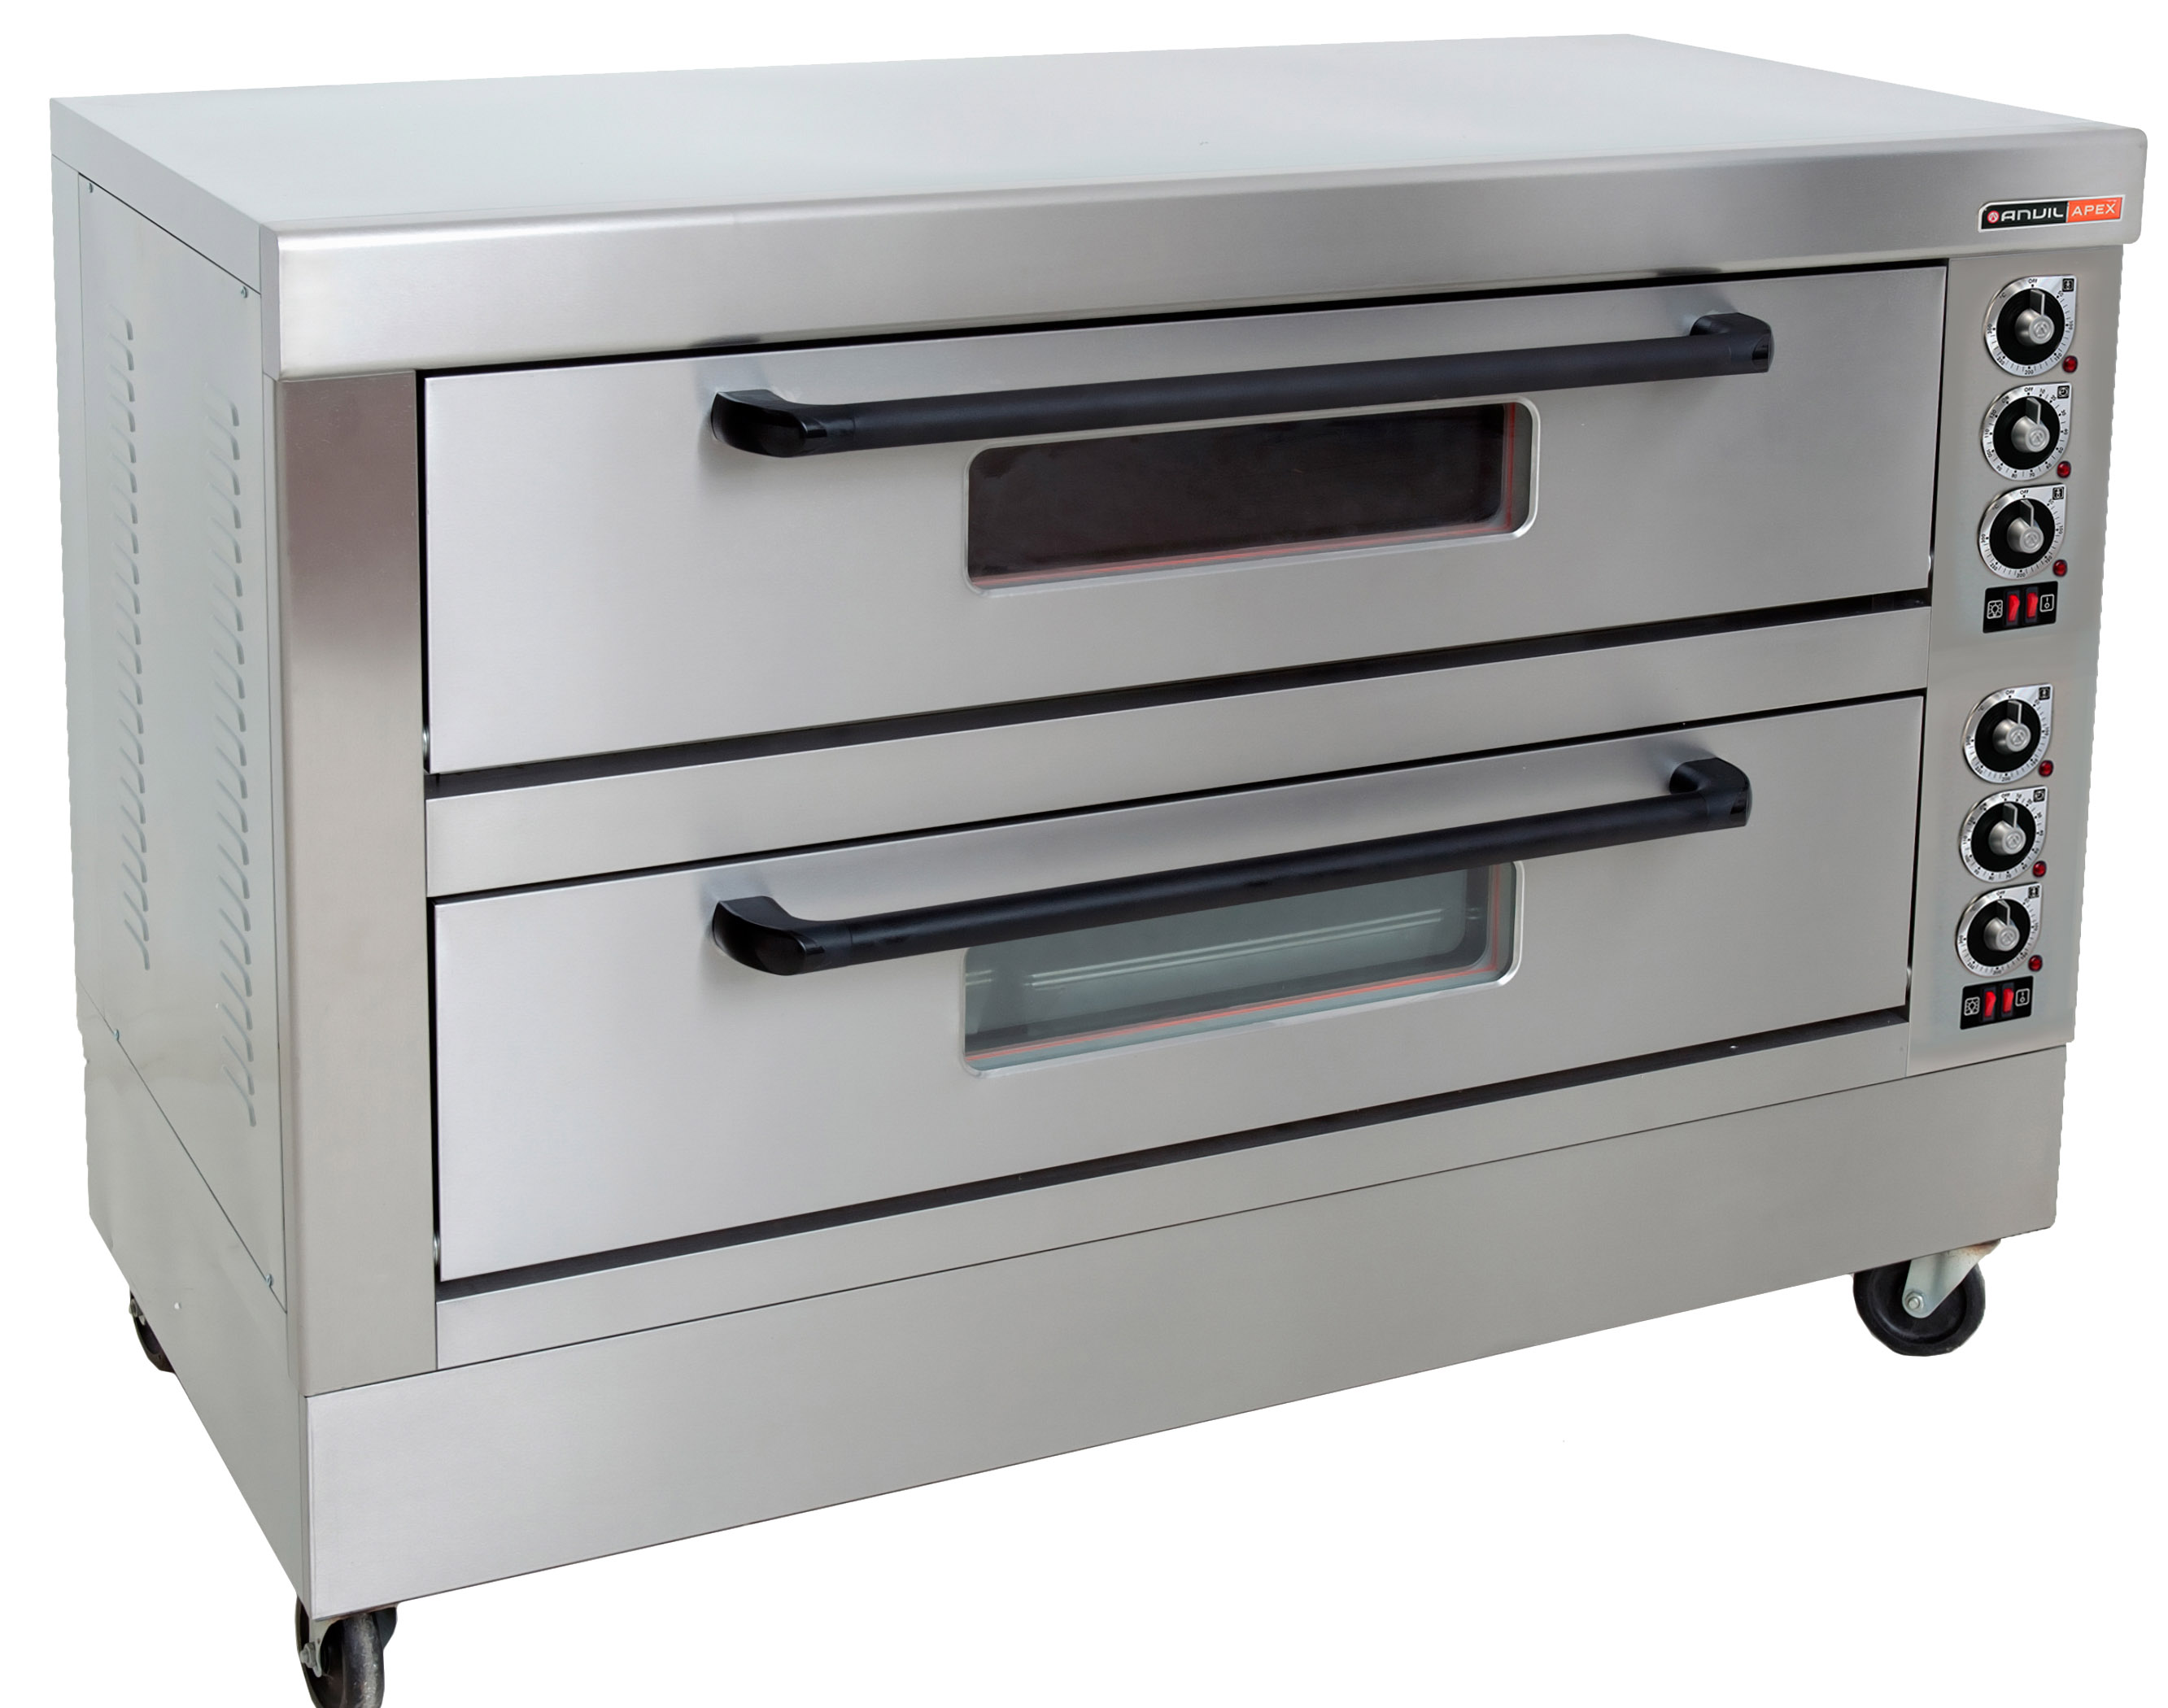 DECK OVEN ANVIL - 6 TRAY - DOUBLE DECK  (3 PHASE - 50Hz)